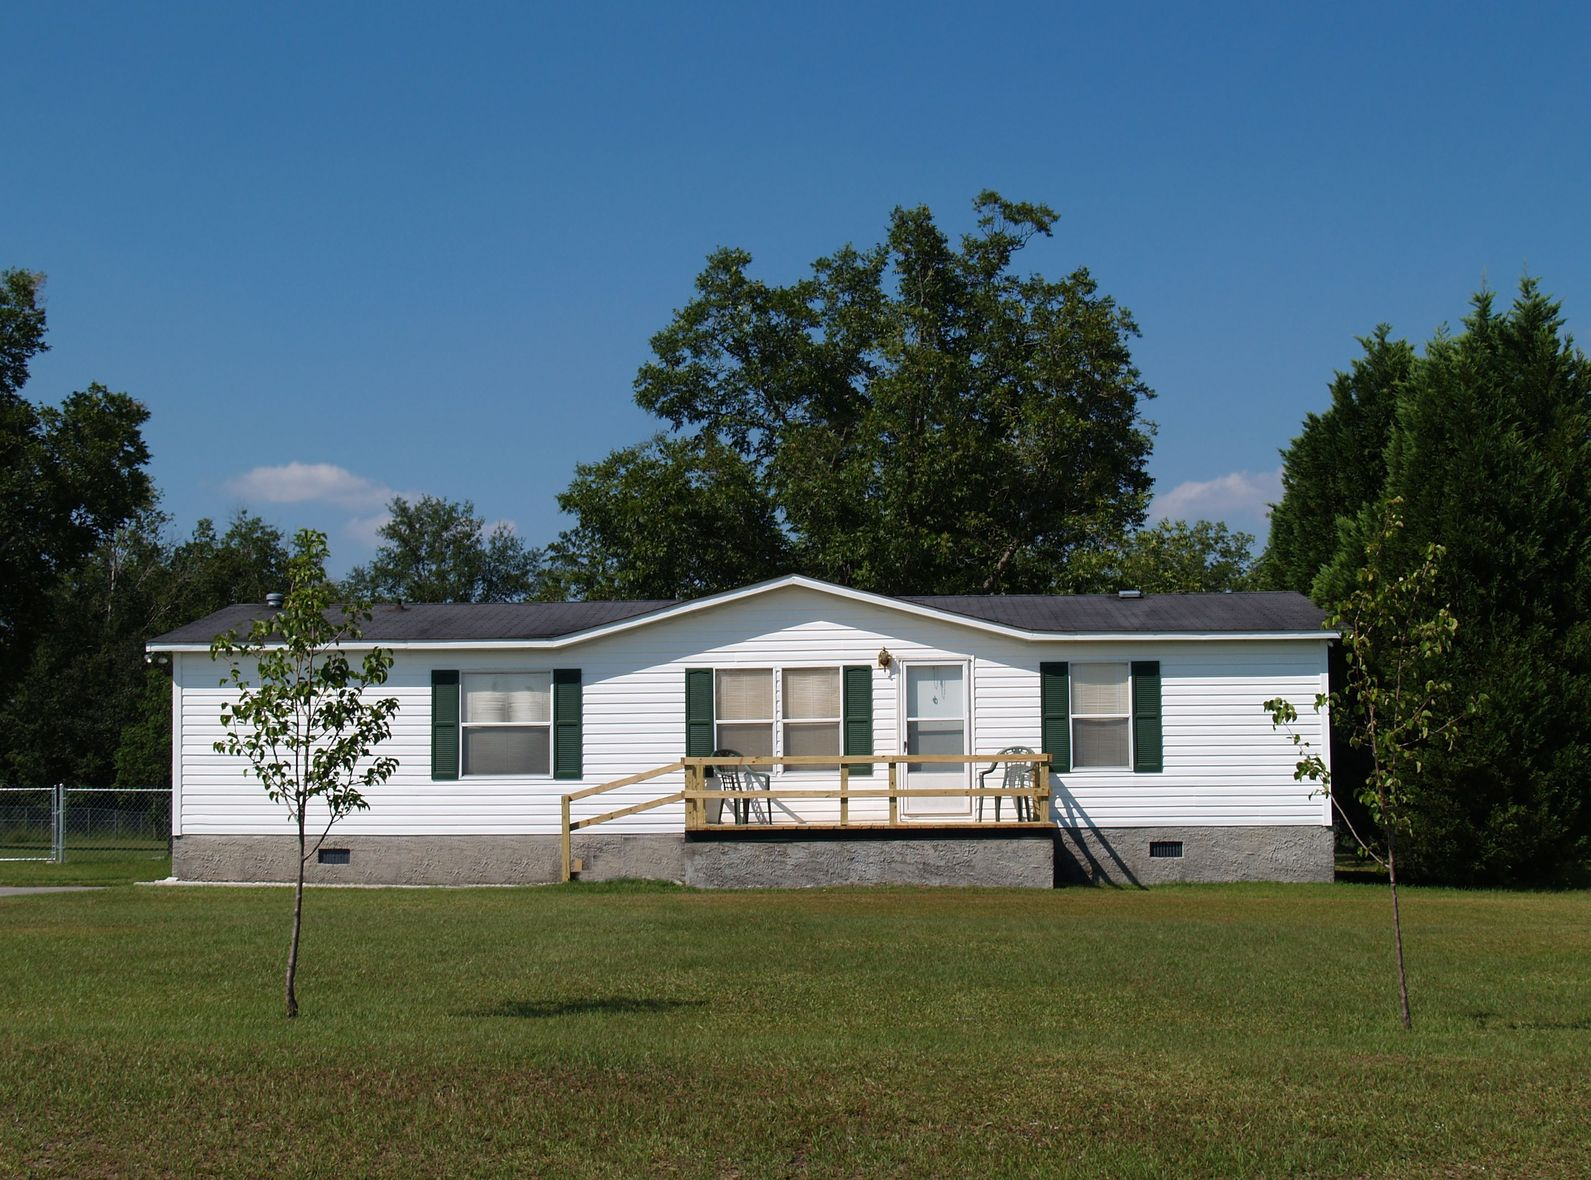 Sugarland, TX. Mobile Home Insurance